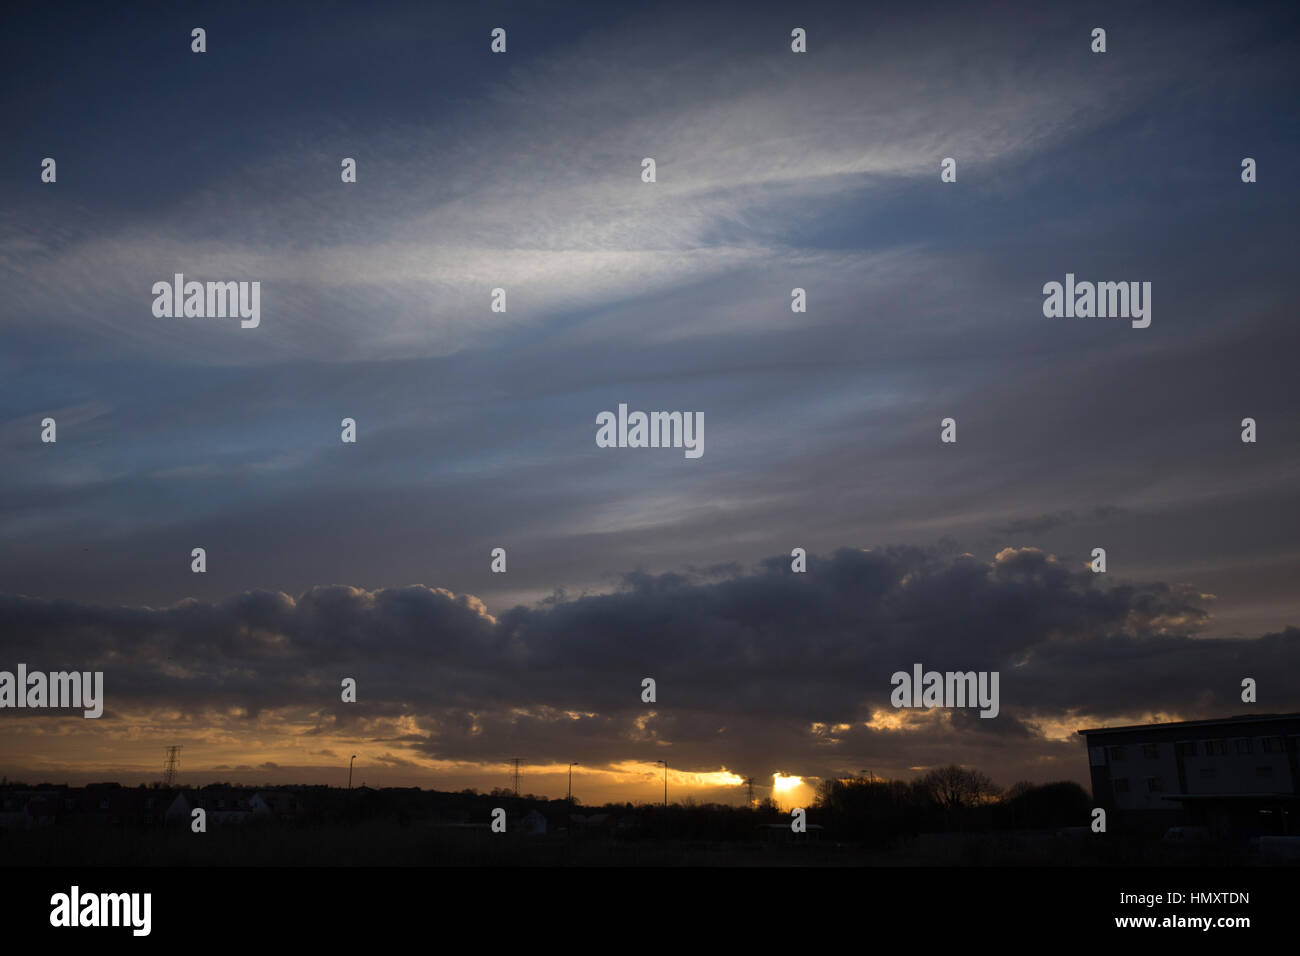 Dartford, Kent, UK. 7th February 2017. A stormy sunset near Dartford Kent. The sun is setting over a new housing Stock Photo